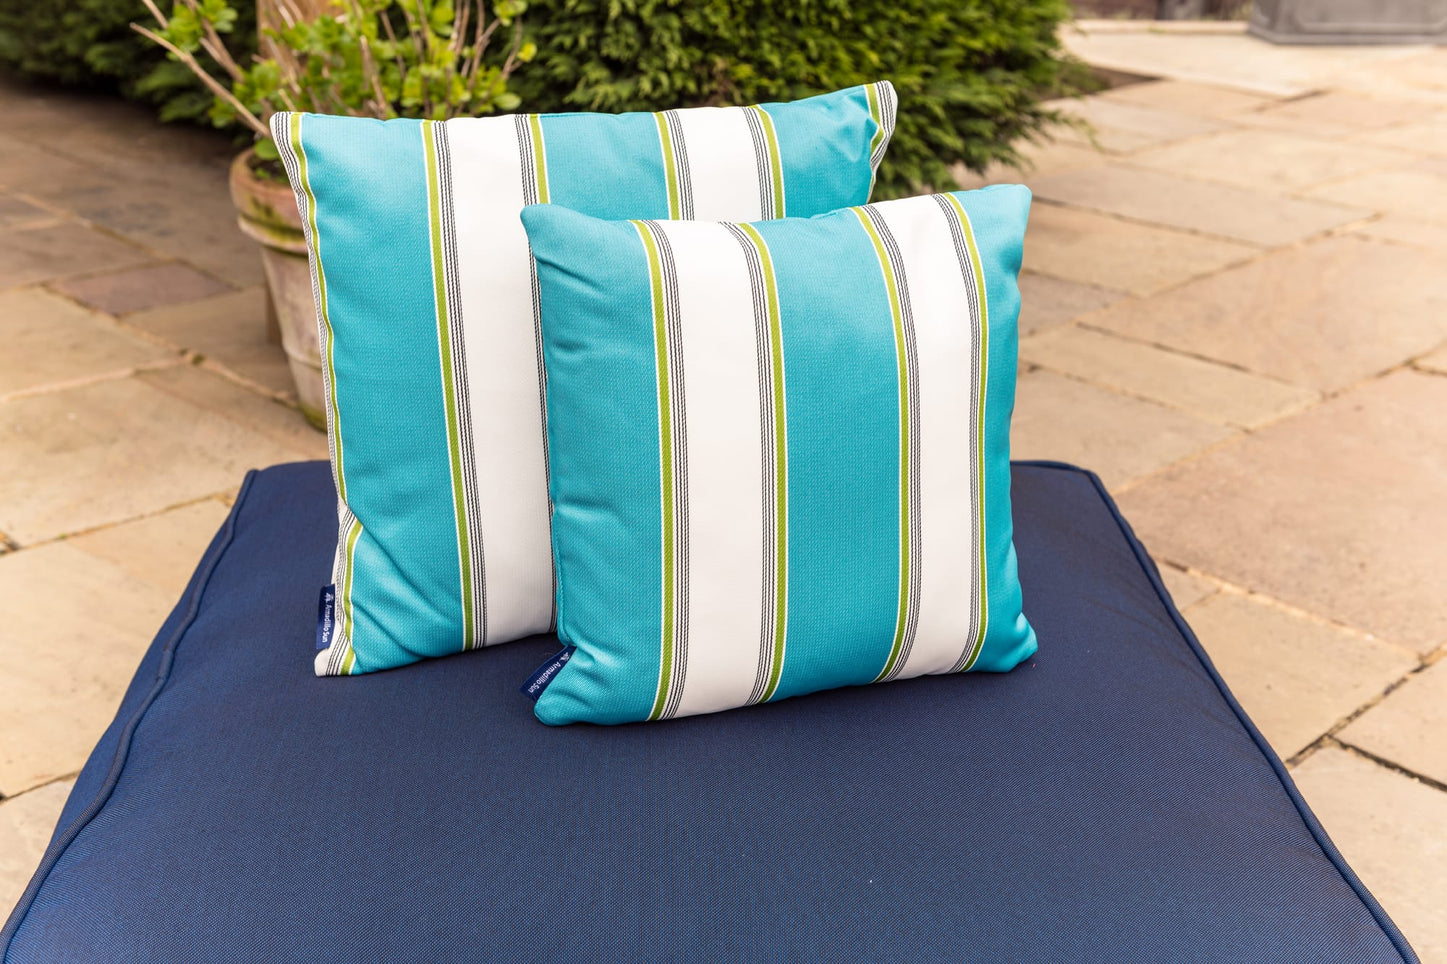 Luxury Summer Stripe in Turquoise, White and Green - Outdoor Cushion Bean Bag Cushion armadillosun